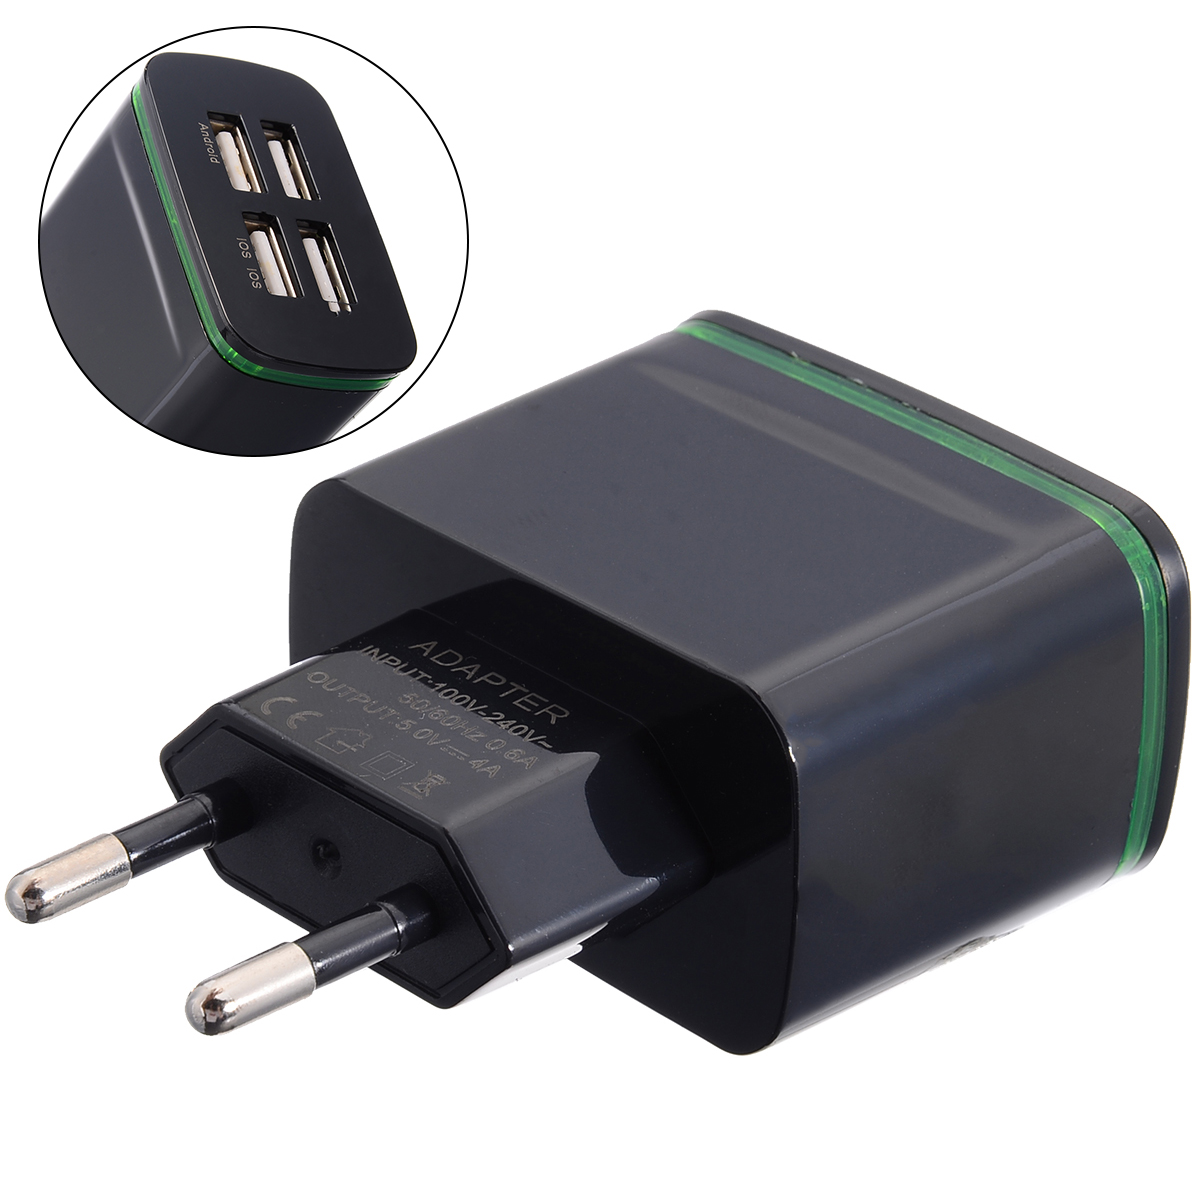 Protable Quick Charge USB Chargering Adapter 5V 4A Power Plug EU Travel Wall Phone Charger 4 Port Adapters